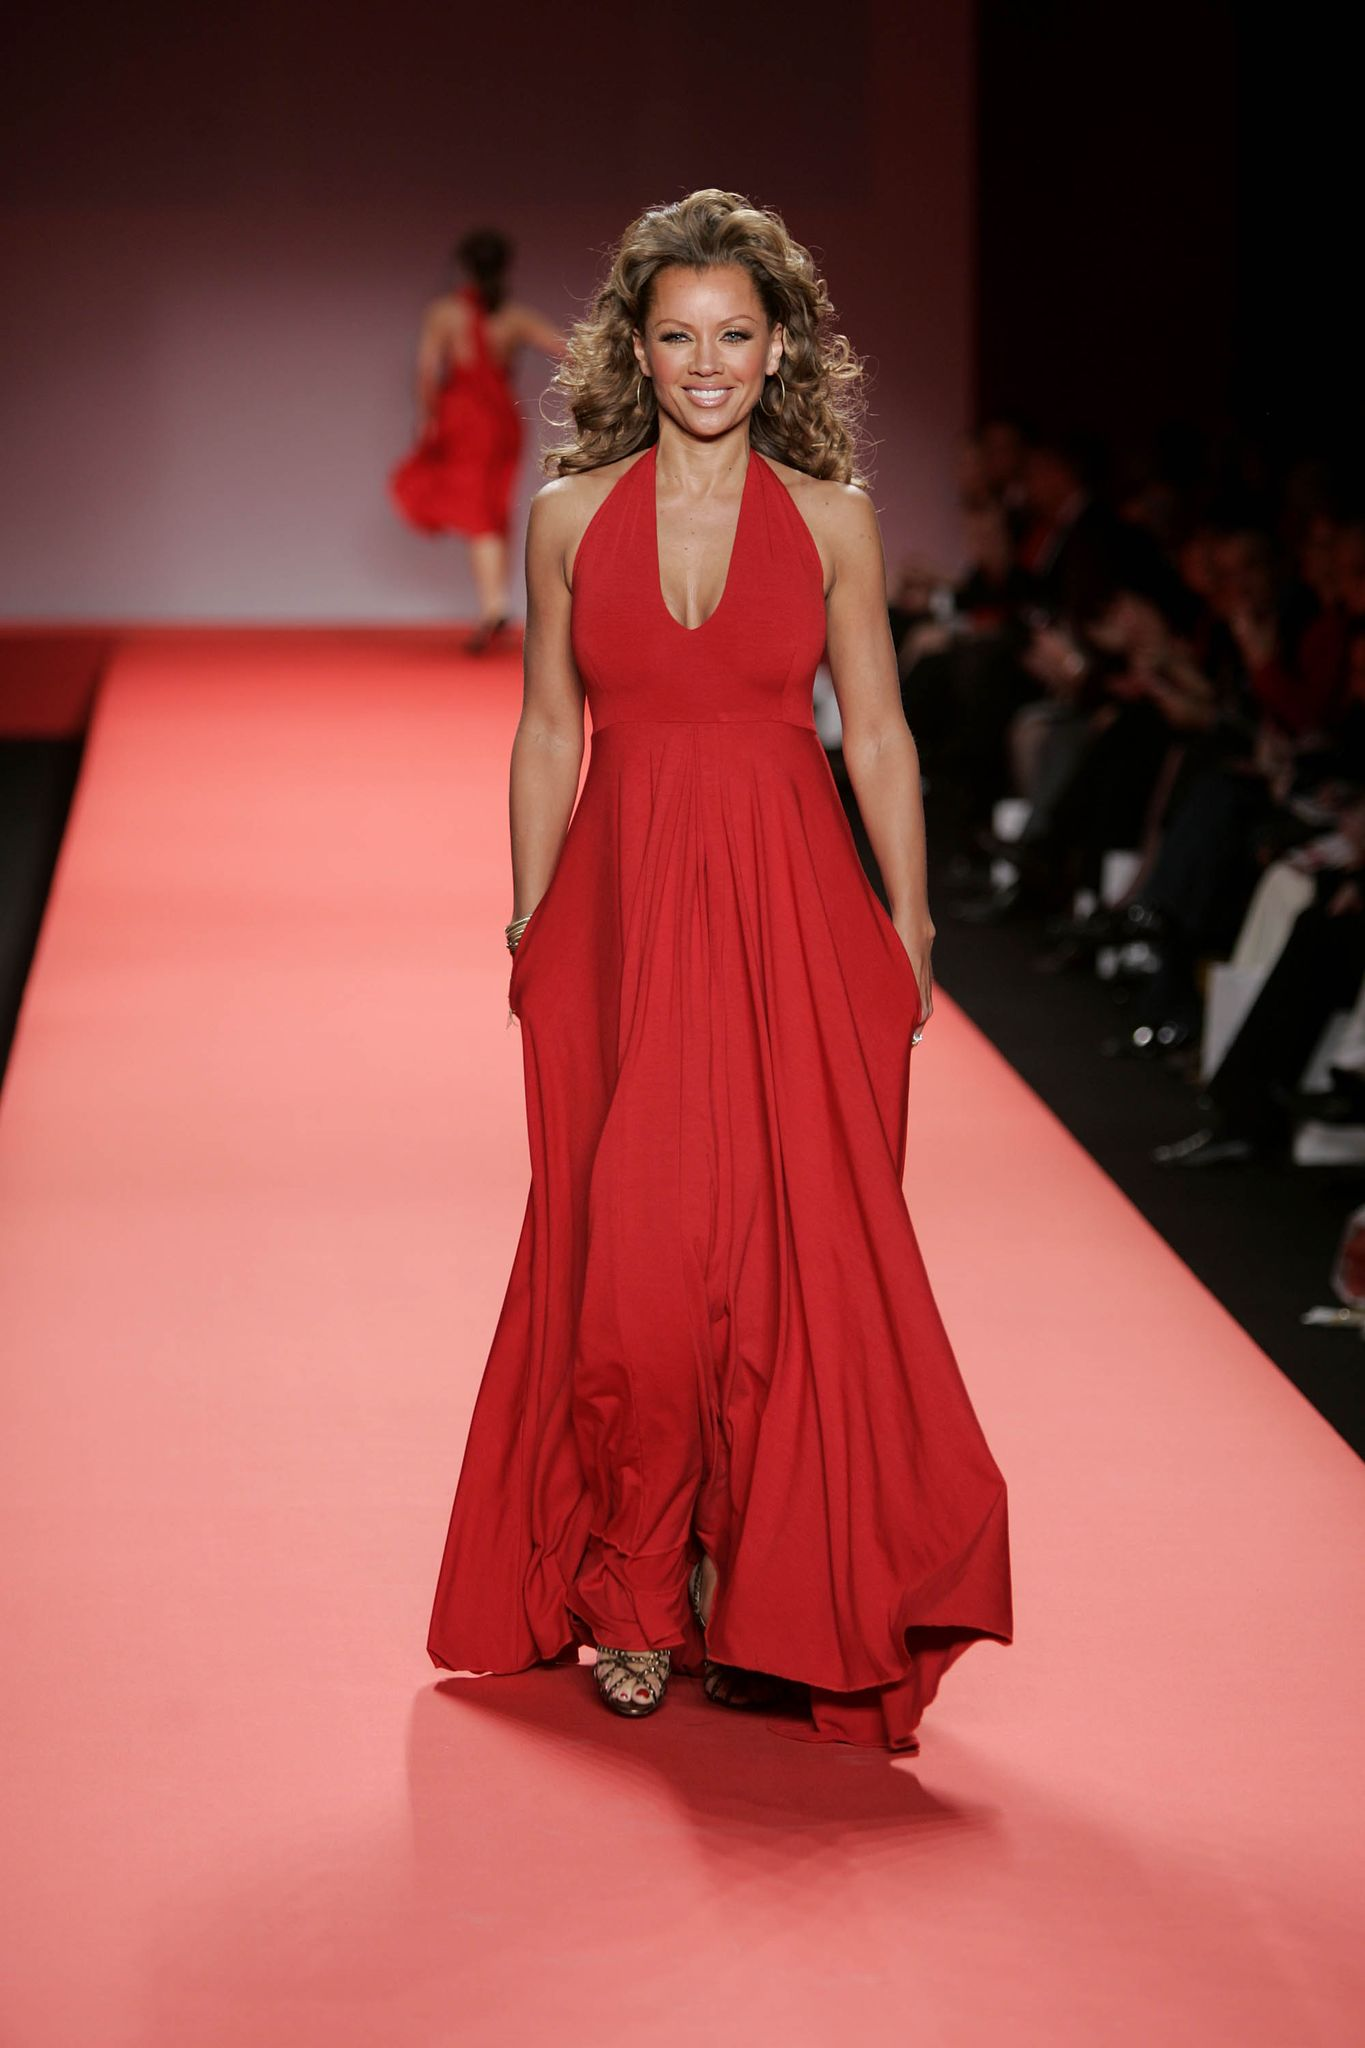 Vanessa Williams strutting on a runway during a fashion week on February 4, 2004 in New York.   Photo: Getty Images